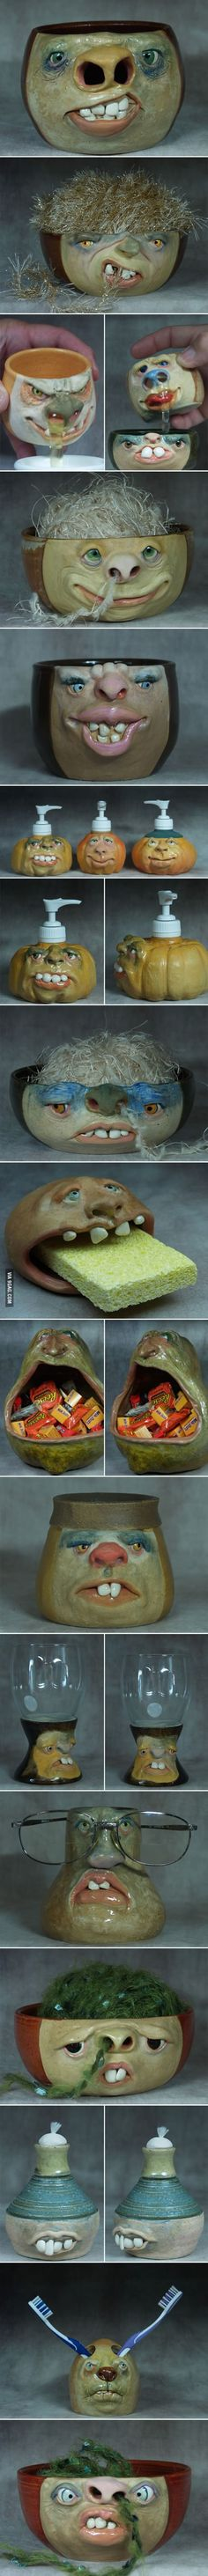 The Weird Pottery Art (by Lucky Stradley)